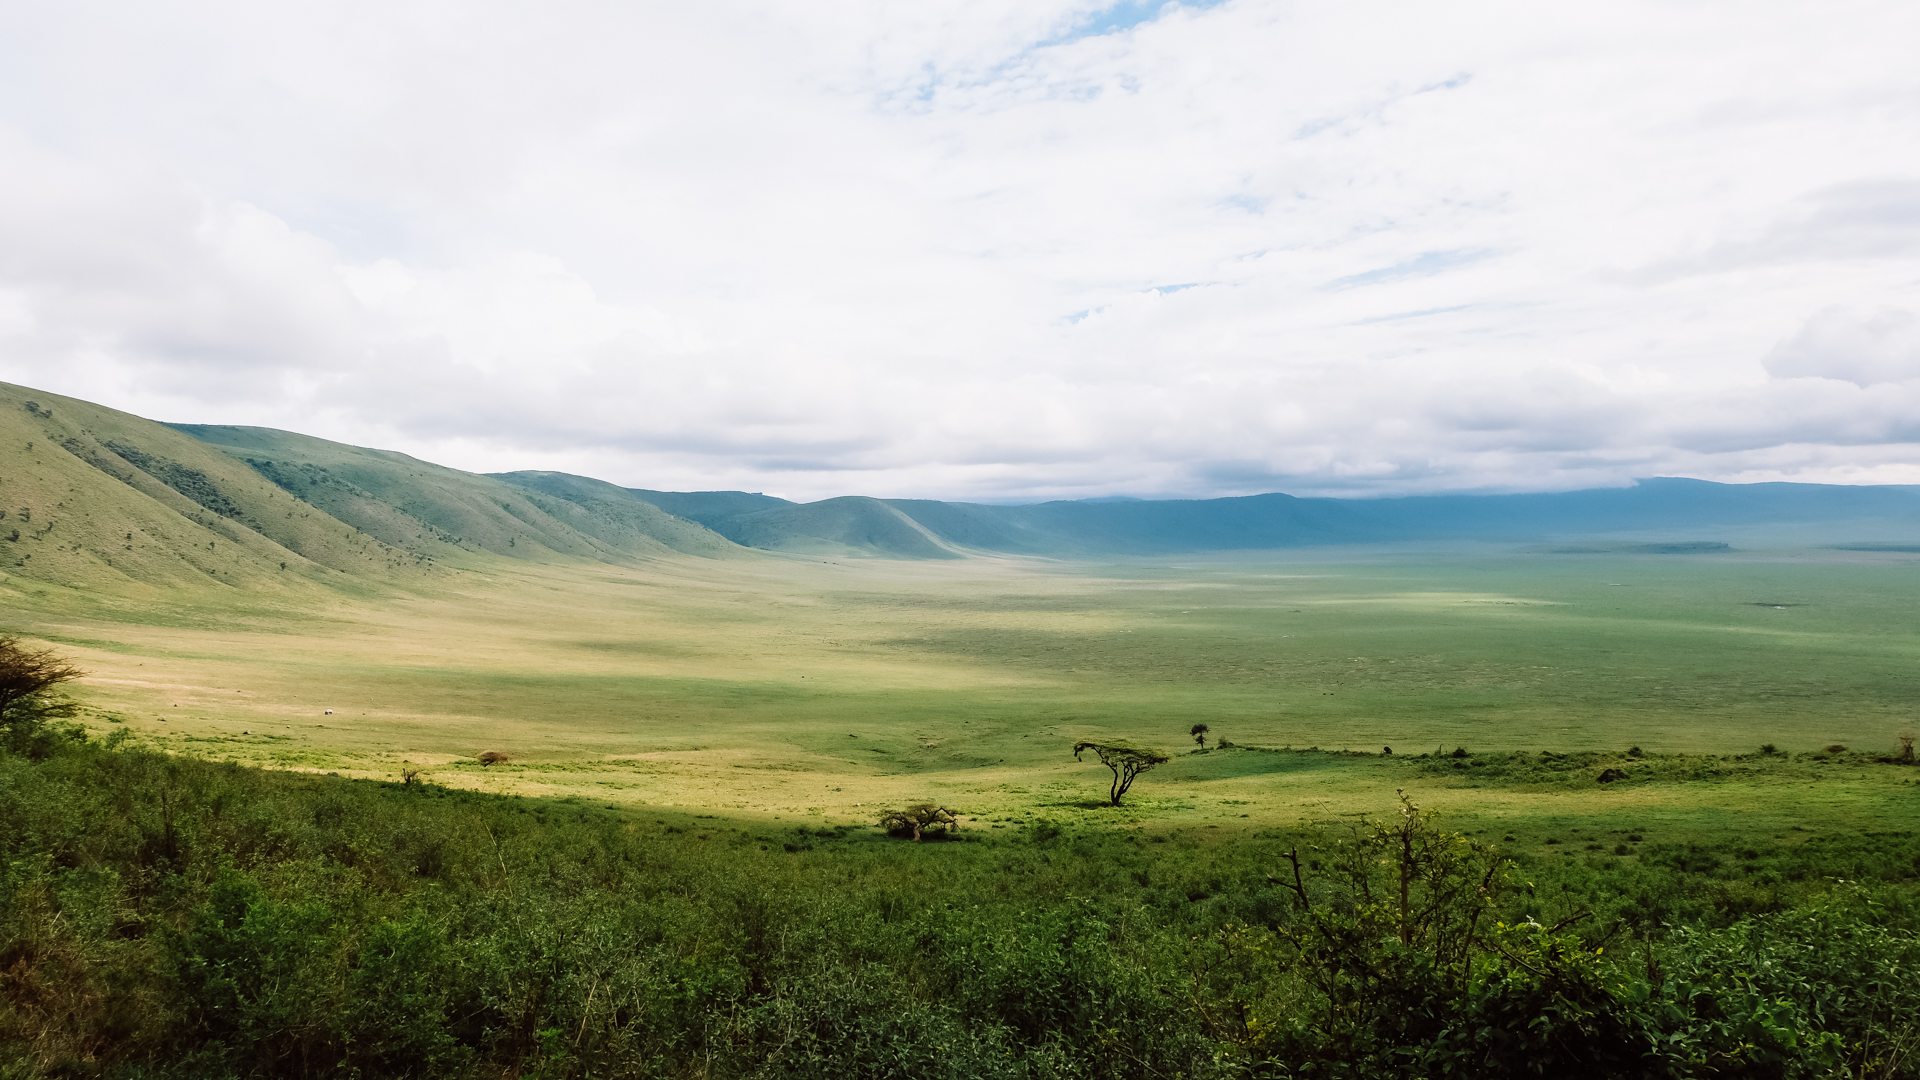 An absolutely stunning view of the crater in the Ngorongoro Conservation Area, Tanzania